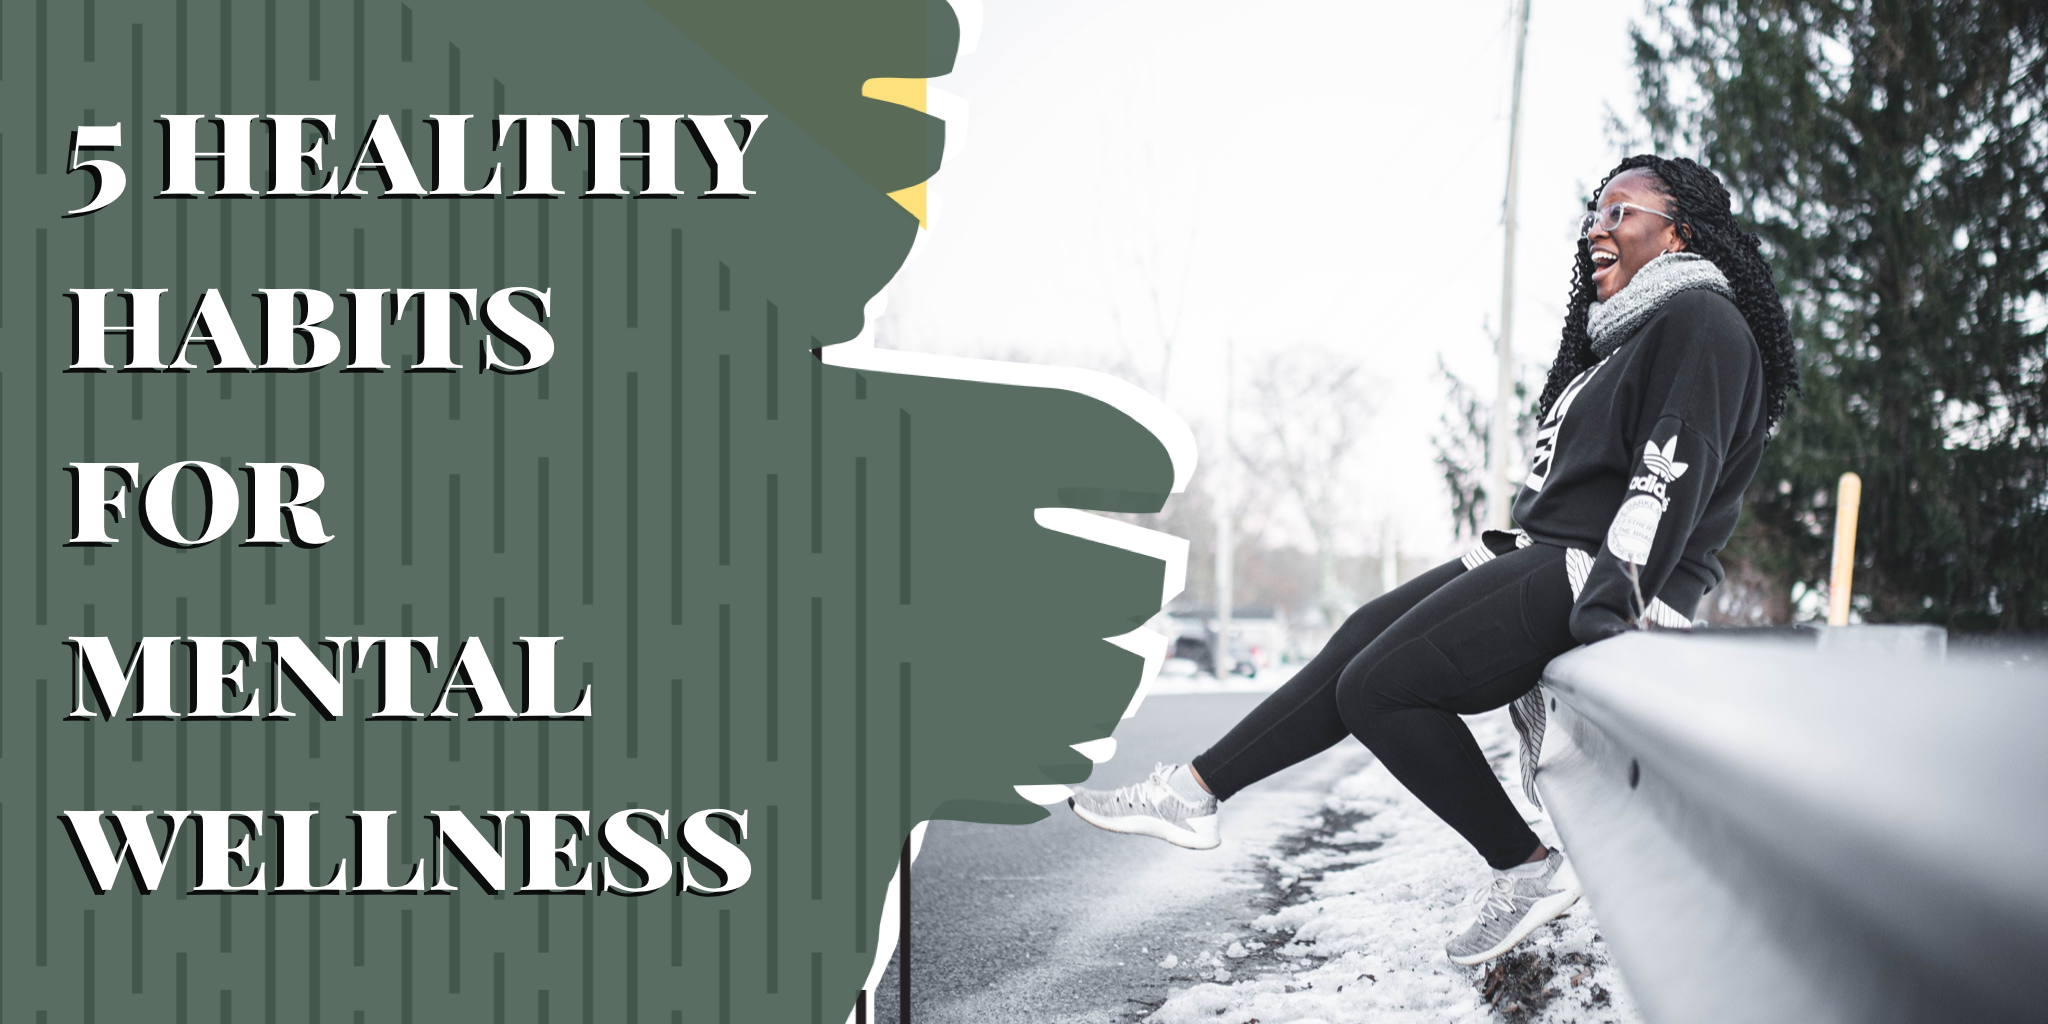 girl sitting on railing with text 5 habits for mental wellness from blog post 5 habits for mental wellness